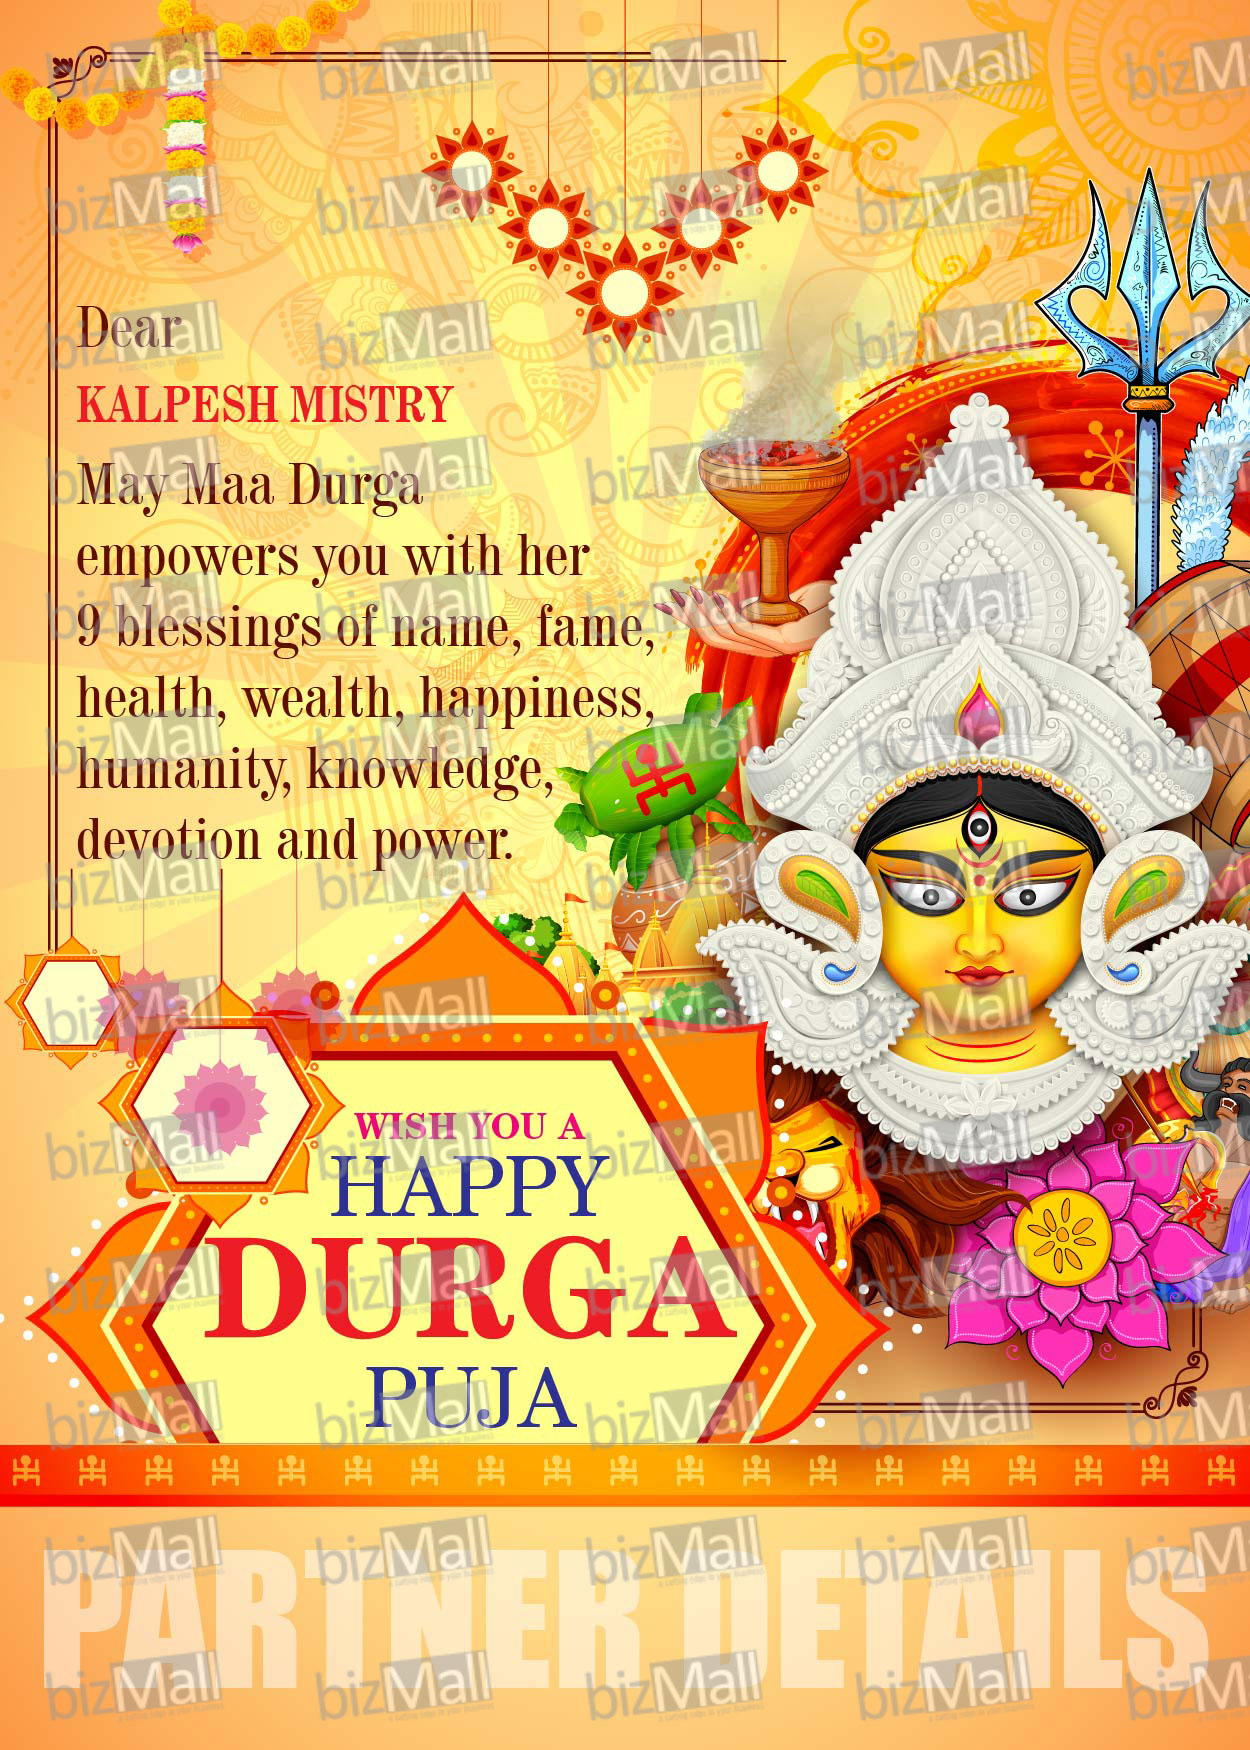 Mcs Durga Puja 2017 With Personalised Name